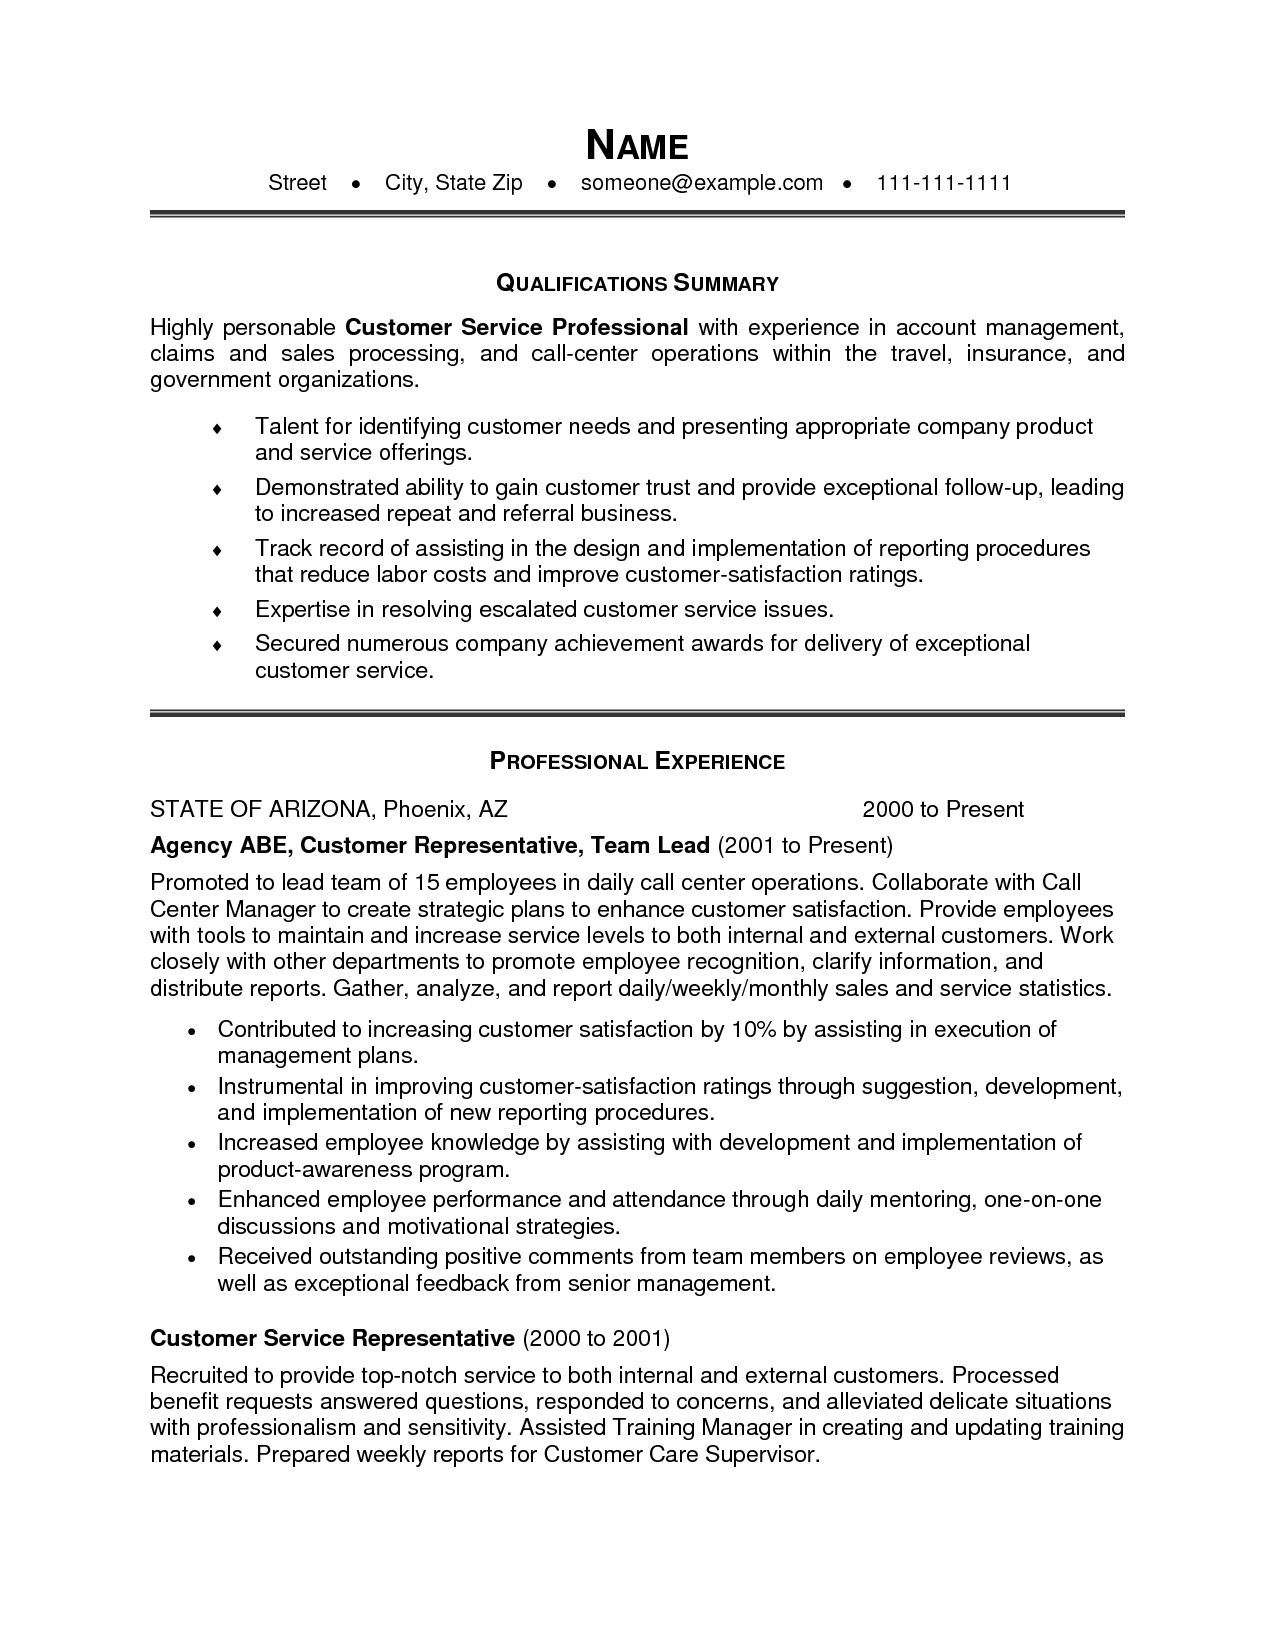 Customer Service Resume Summary Examples Resume Summary Examples Customer Serv Customer Service Resume Examples Resume Summary Examples Customer Service Resume